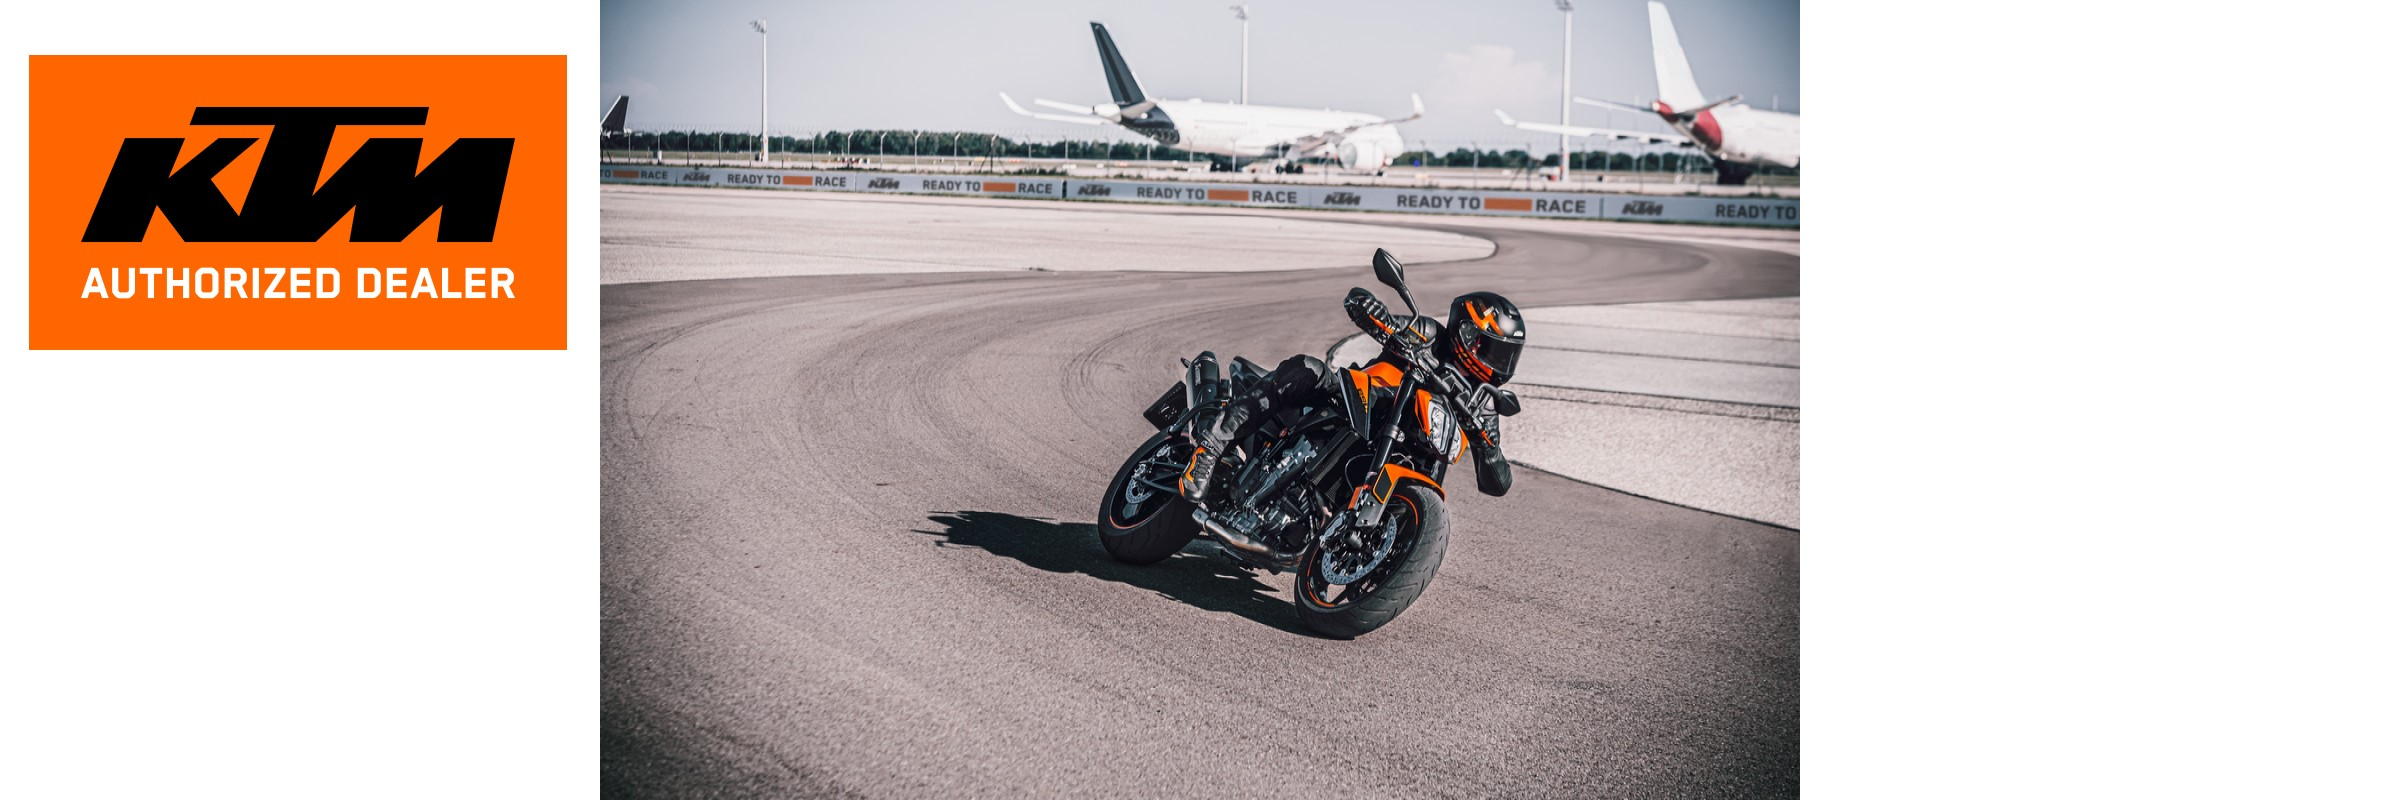 KTM 1290 SUPER DUKE GT 2019  ADVANCED SPORTS TOURING